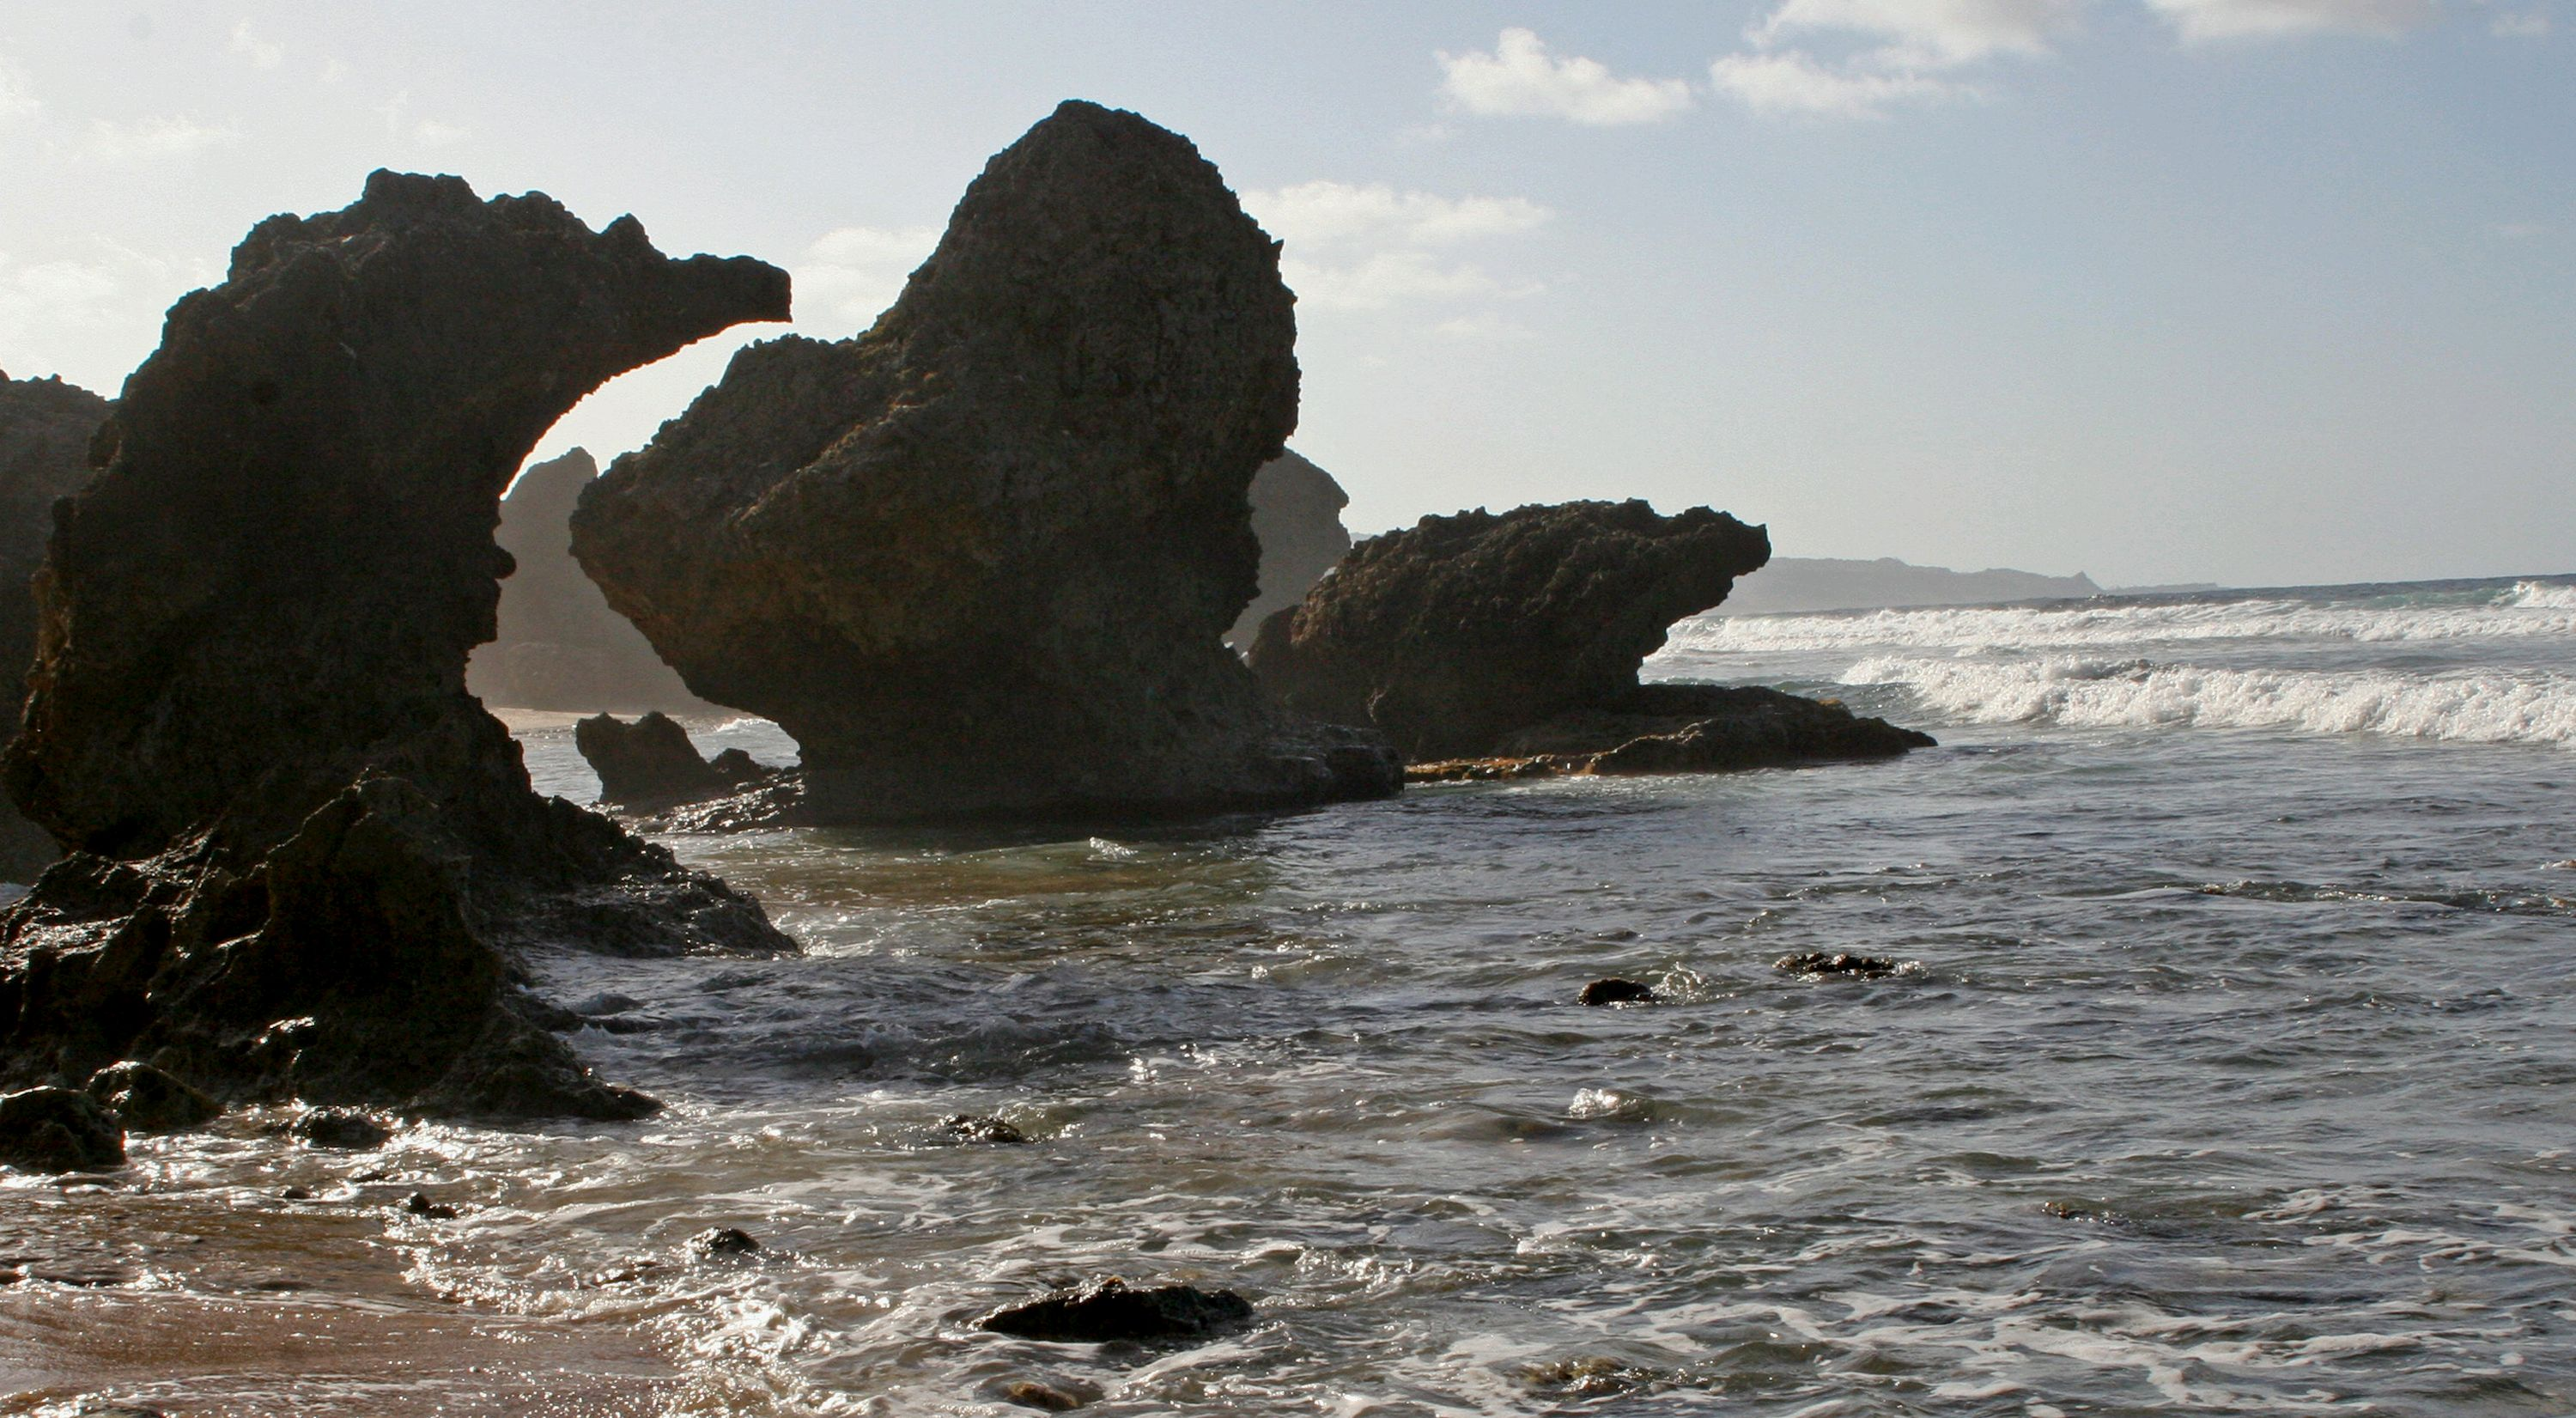 Waves crash on the rocky shore at Bathsheba, located on the East coast of Barbados.